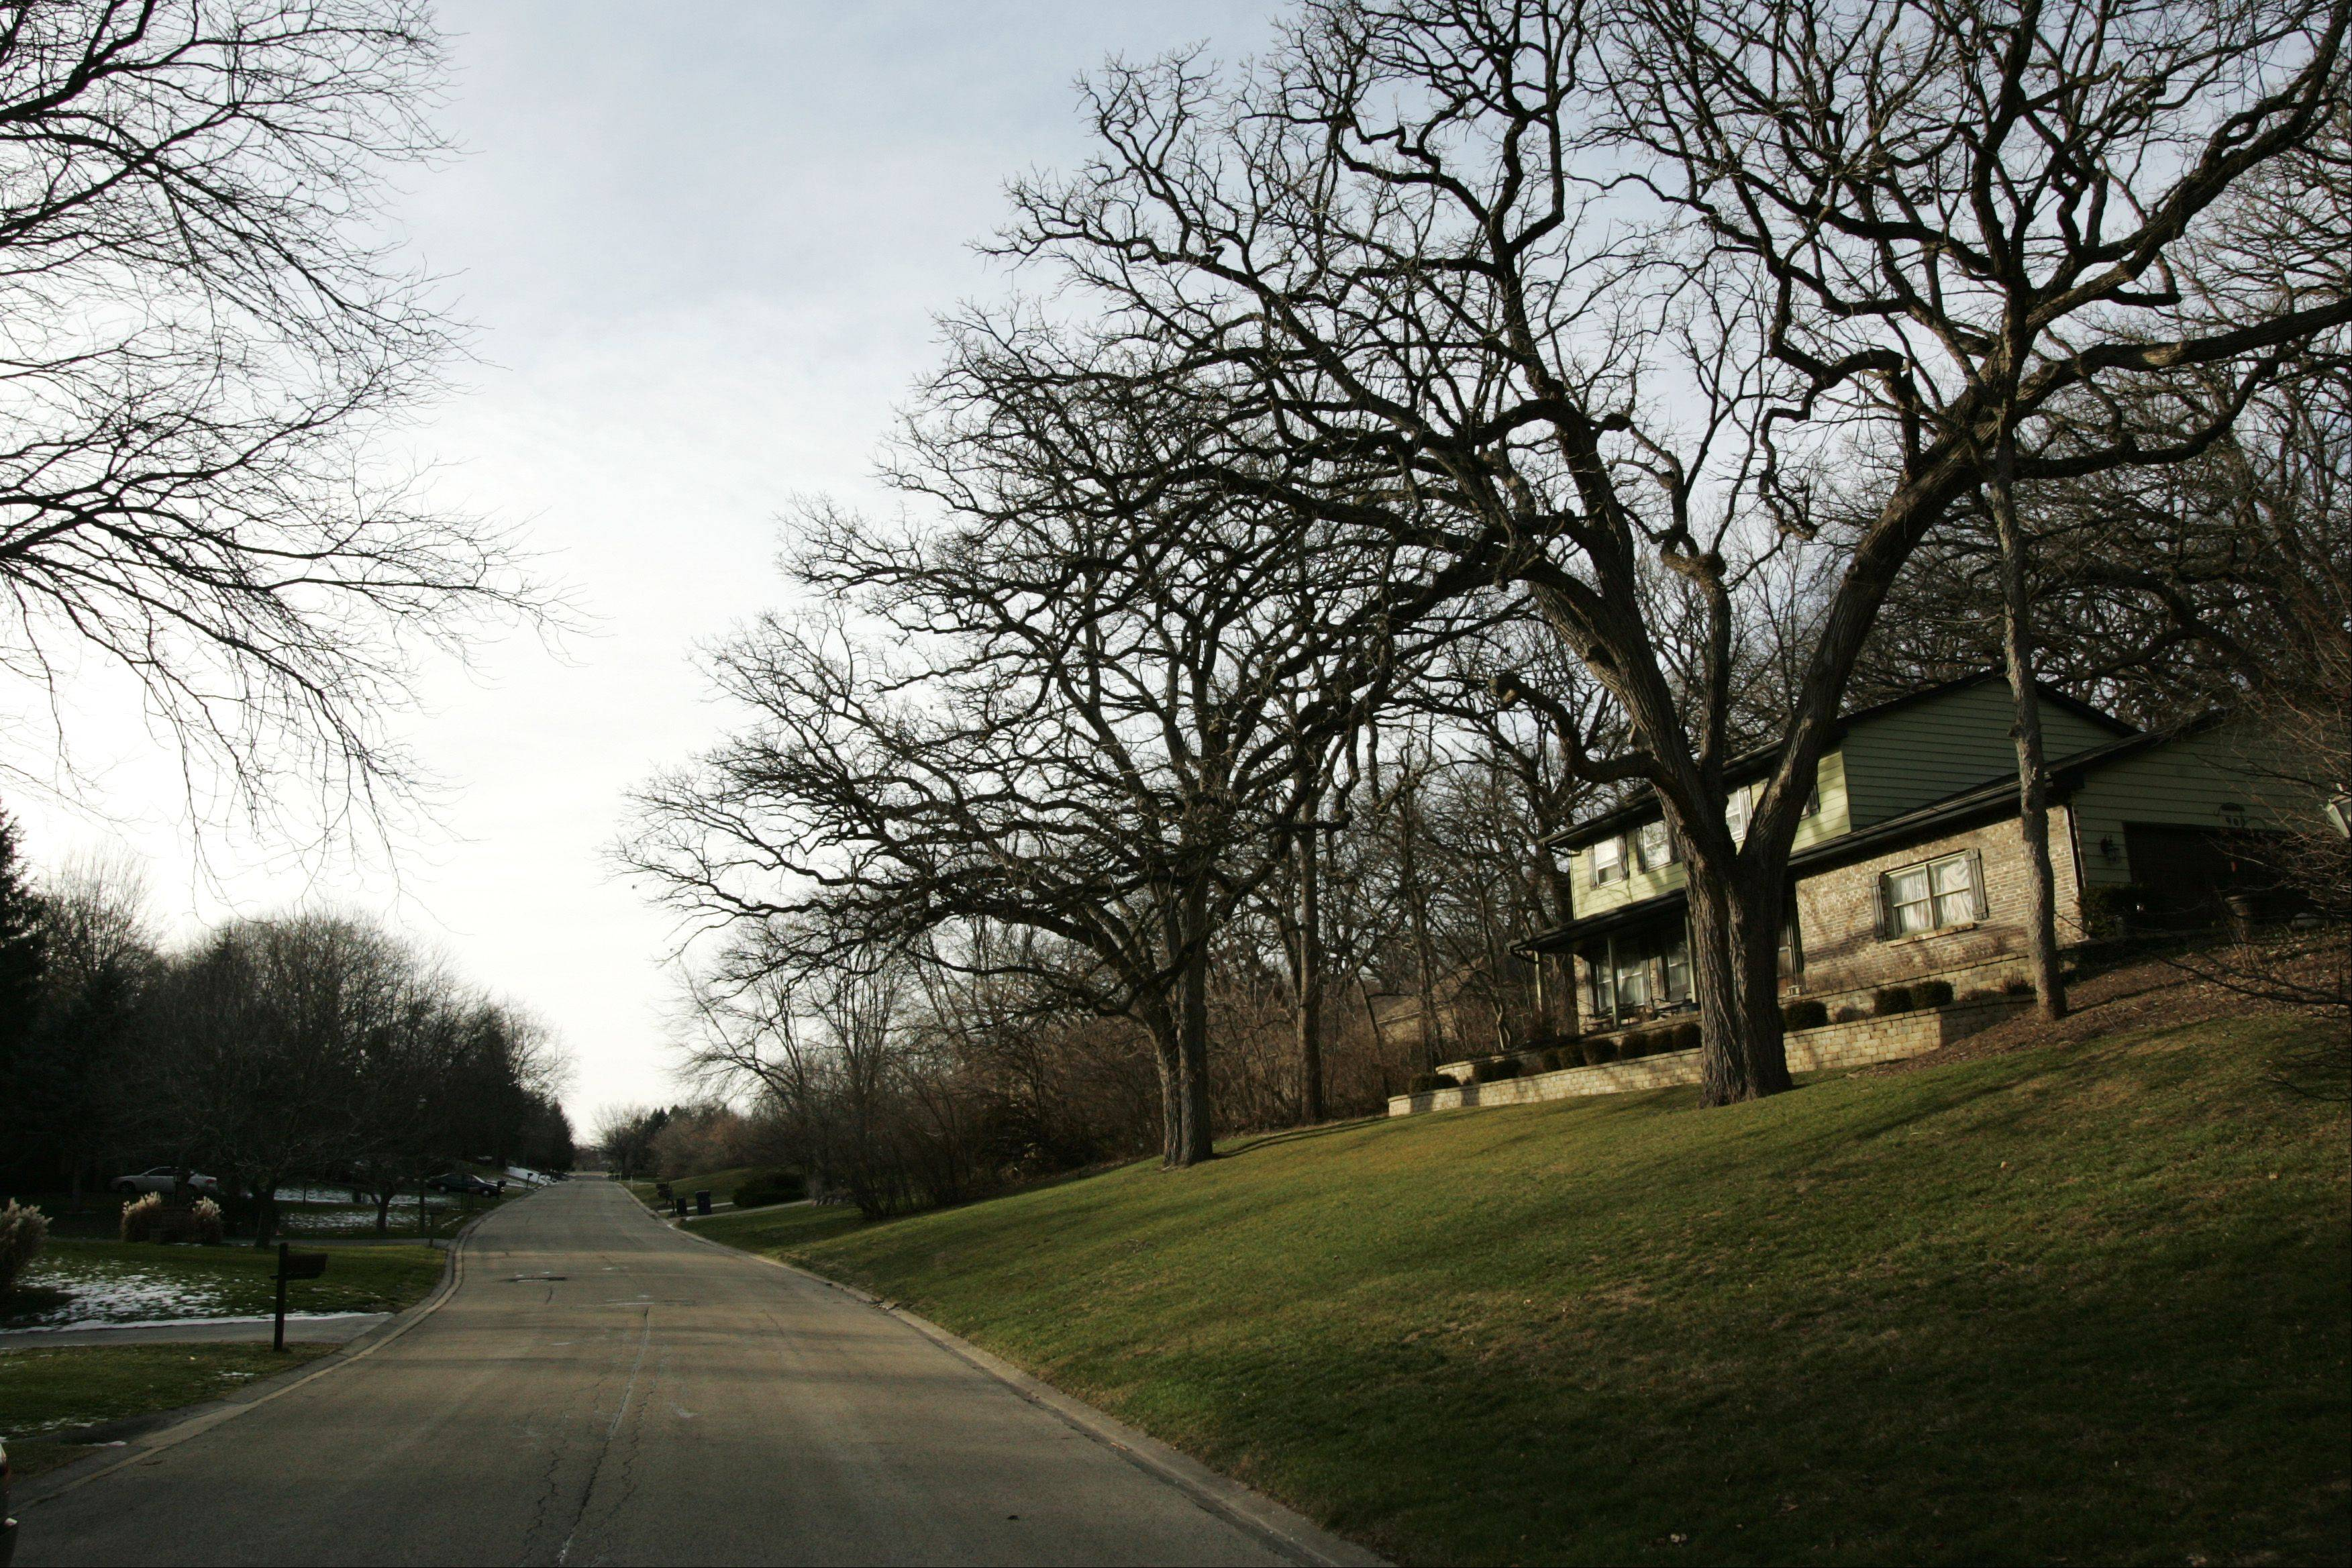 These homes along Surrey Lane in Gaslight Terrace show the large lots and rolling hills for which the area is known.